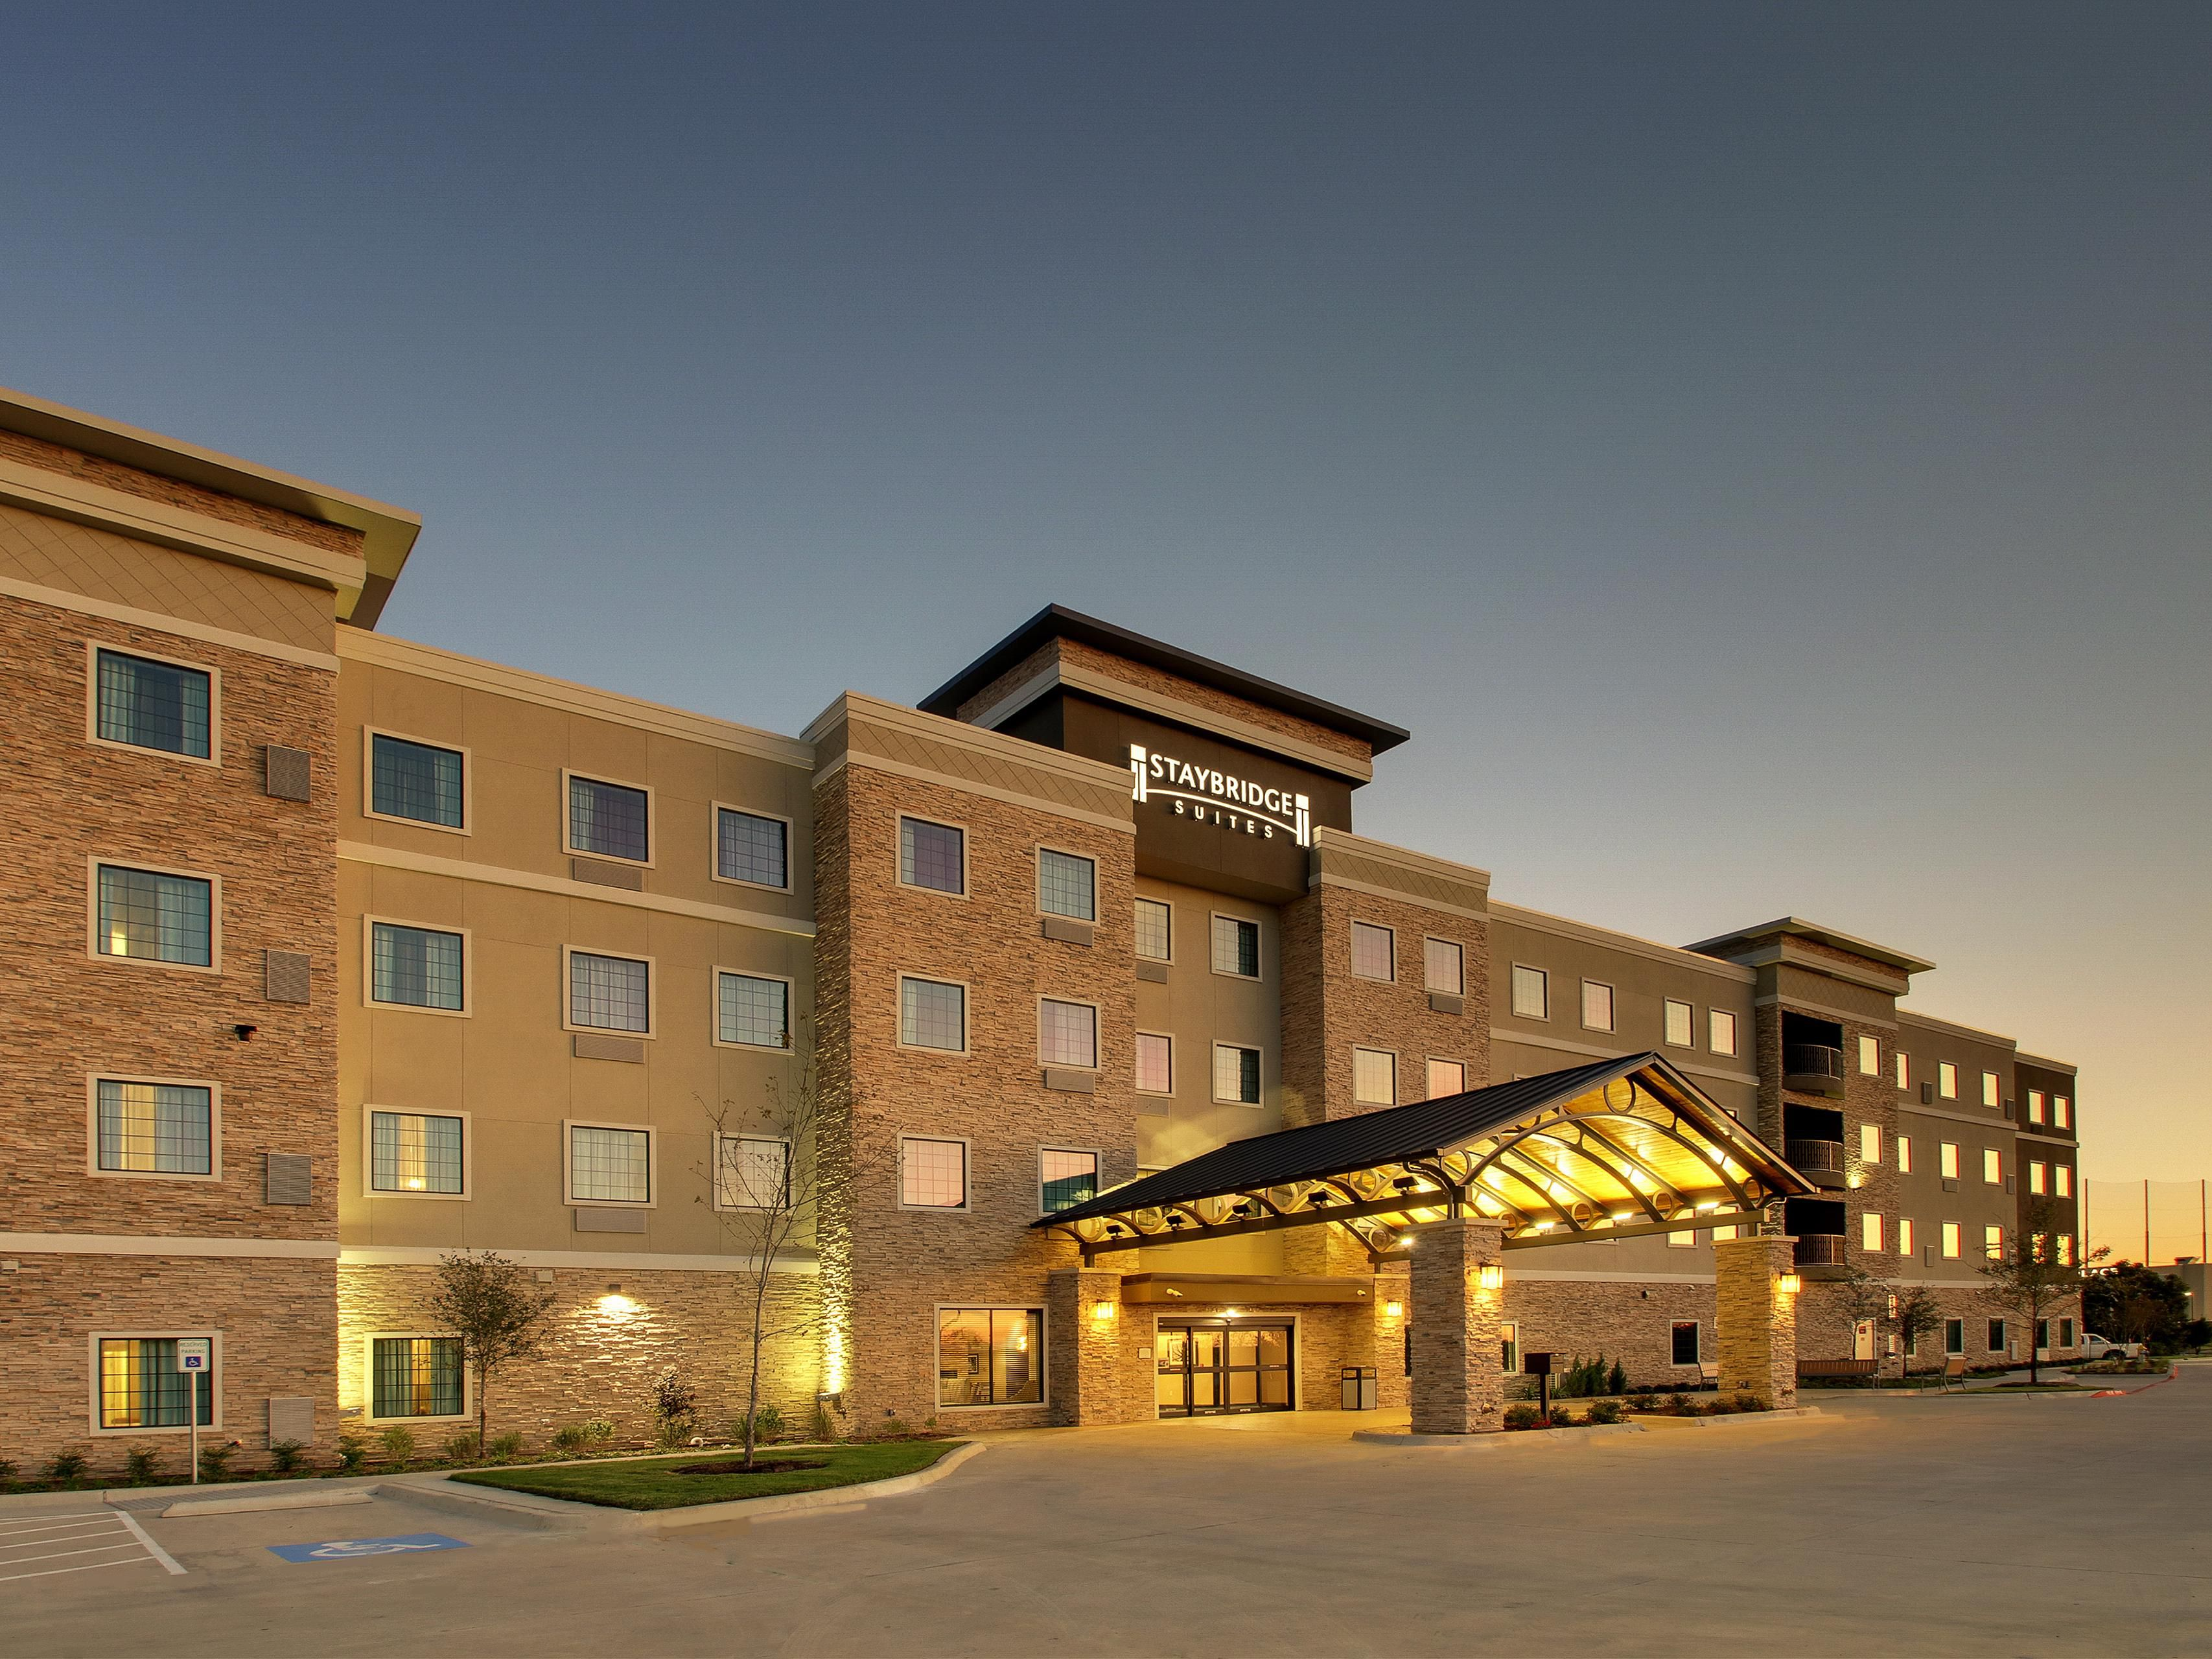 Holiday Inn Express Mesquite Affordable Hotels by IHG